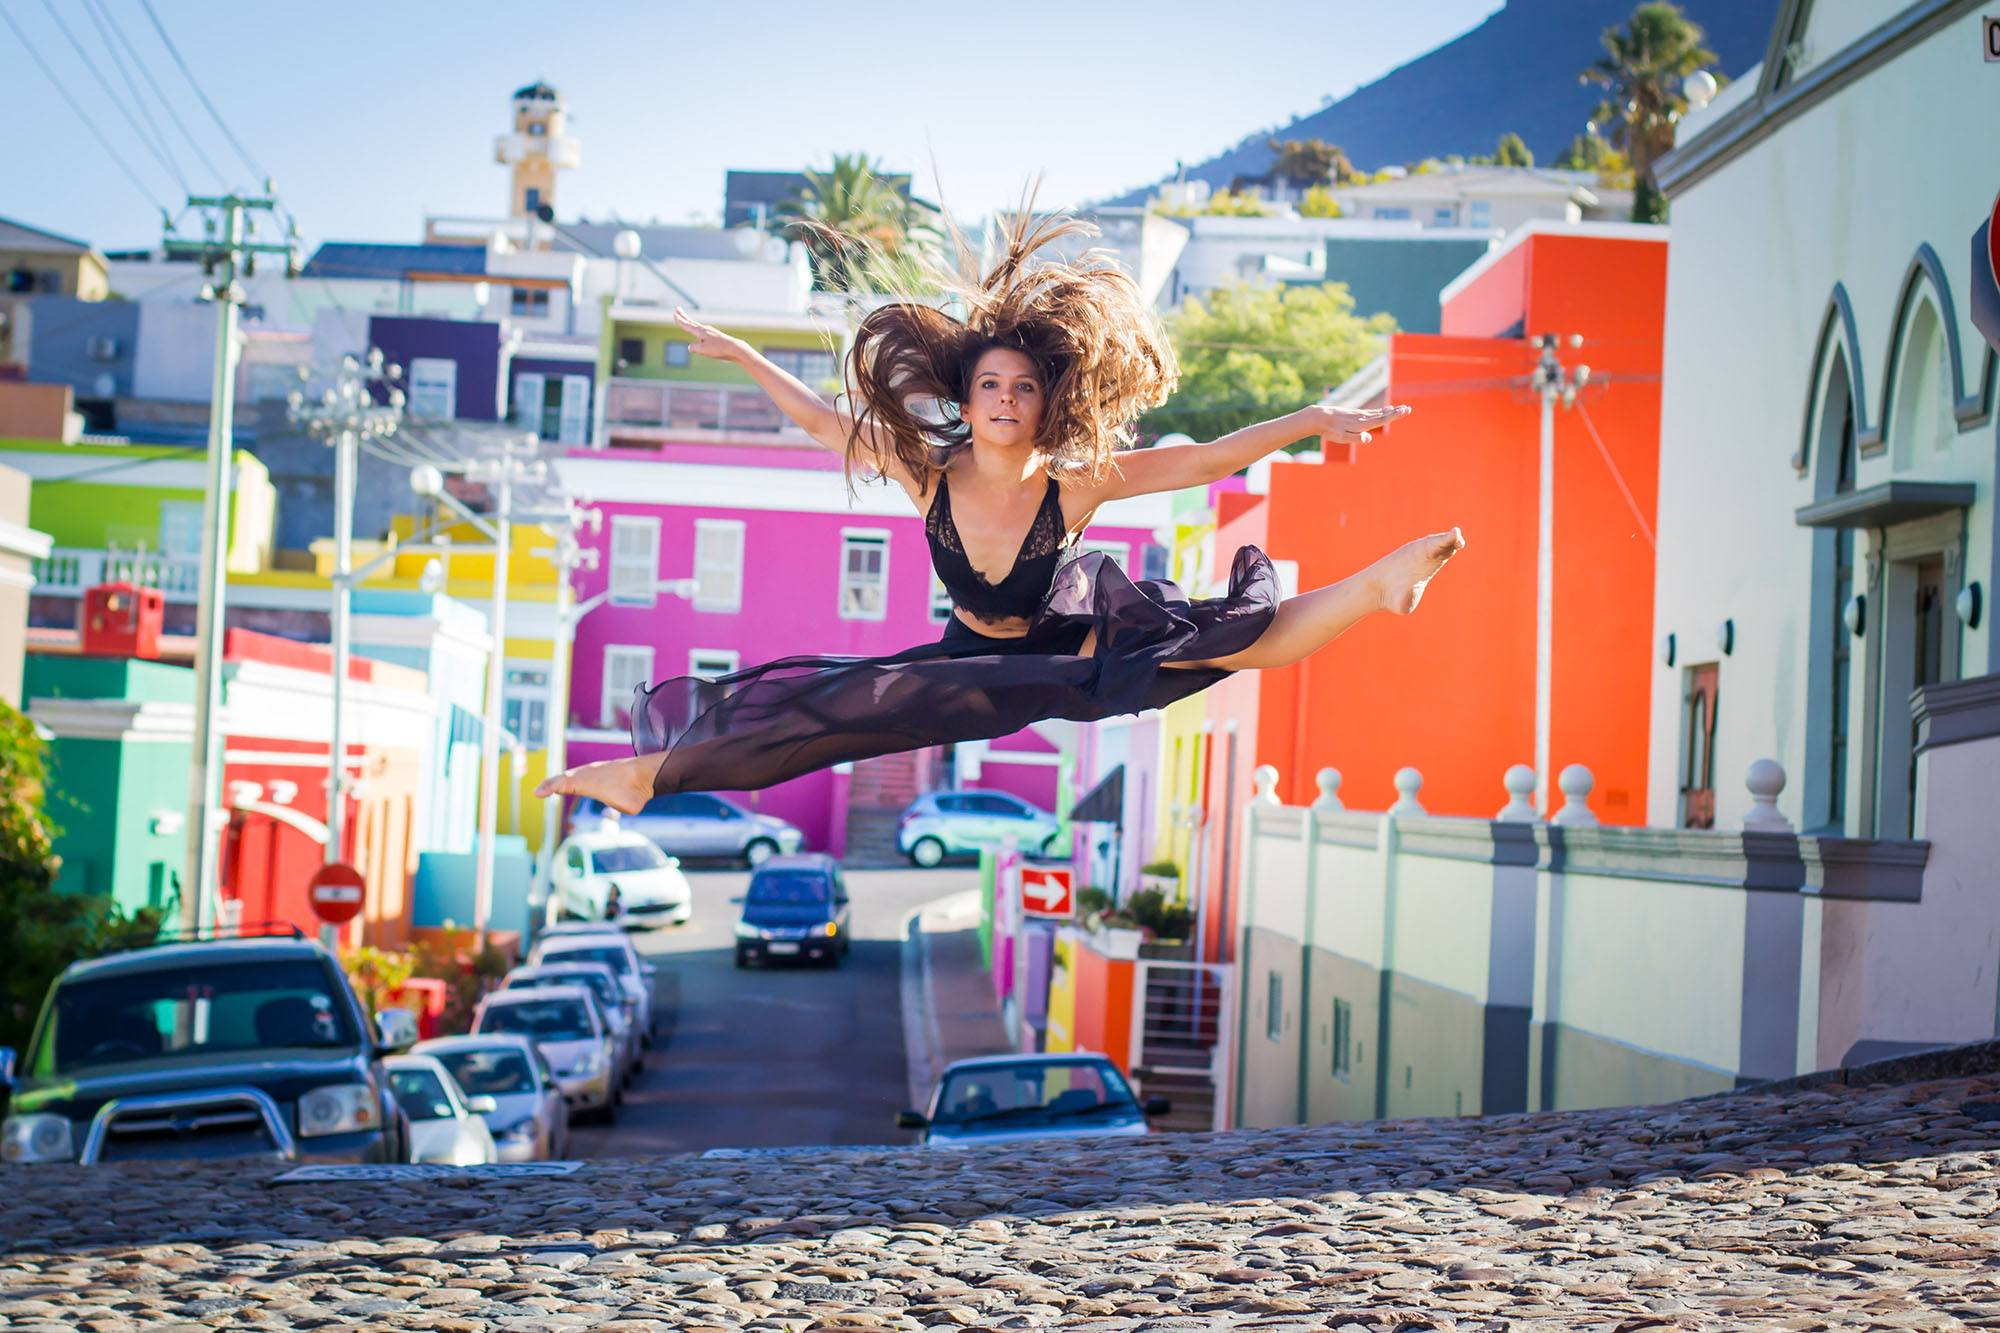 Palmira launches off a hill of cobblestones into a backdrop of colour provided by the bo kaap suburb. amanda webb